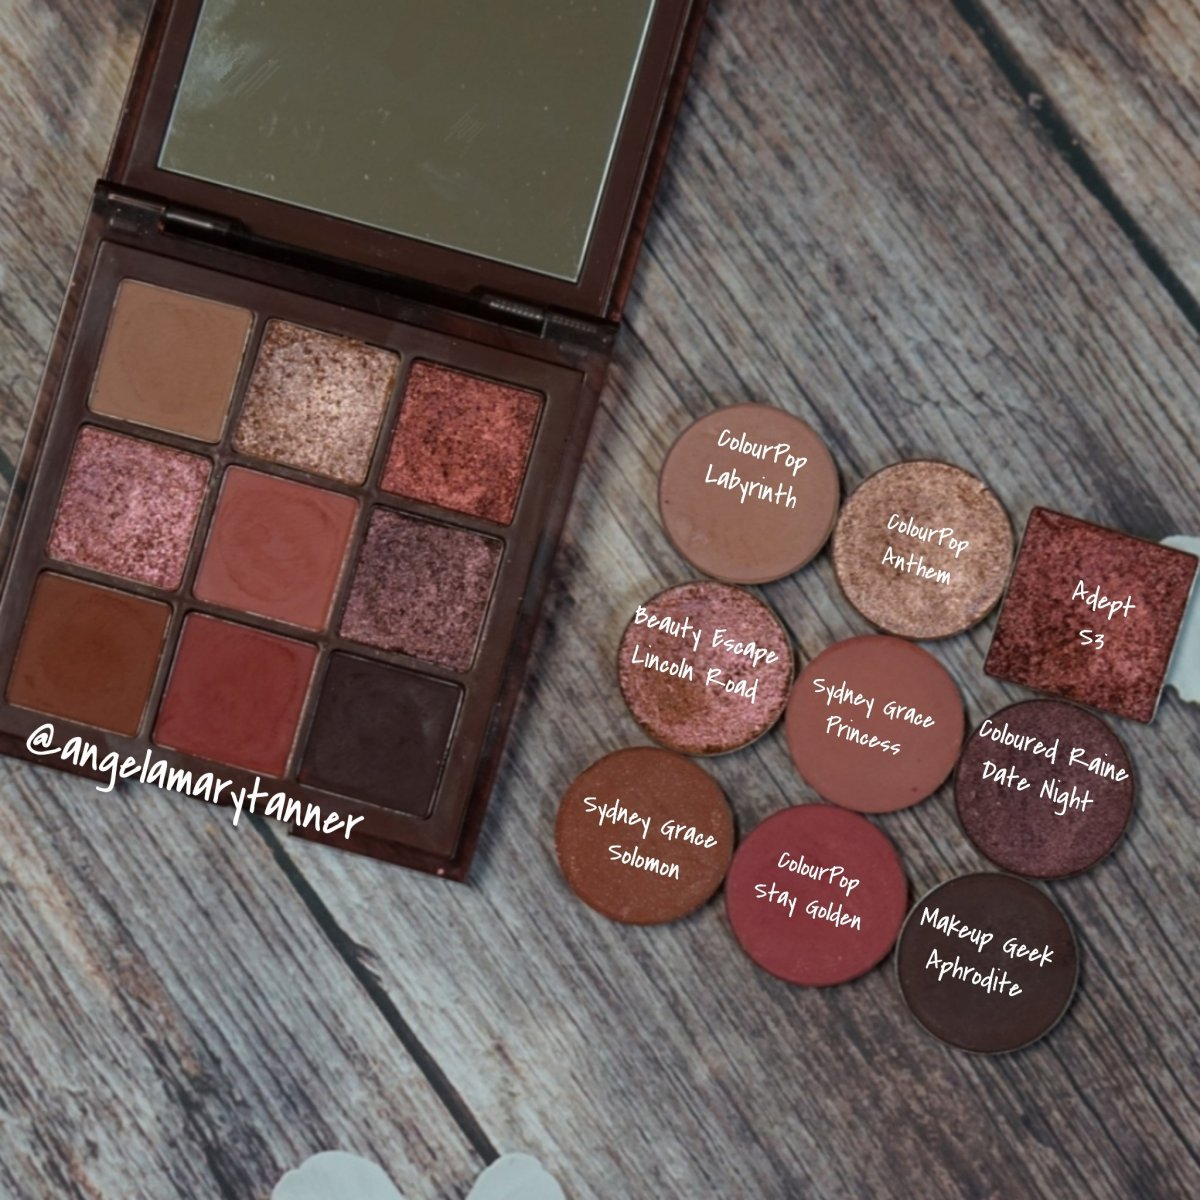 Nude Mood Shadow Palette by Colourpop #21